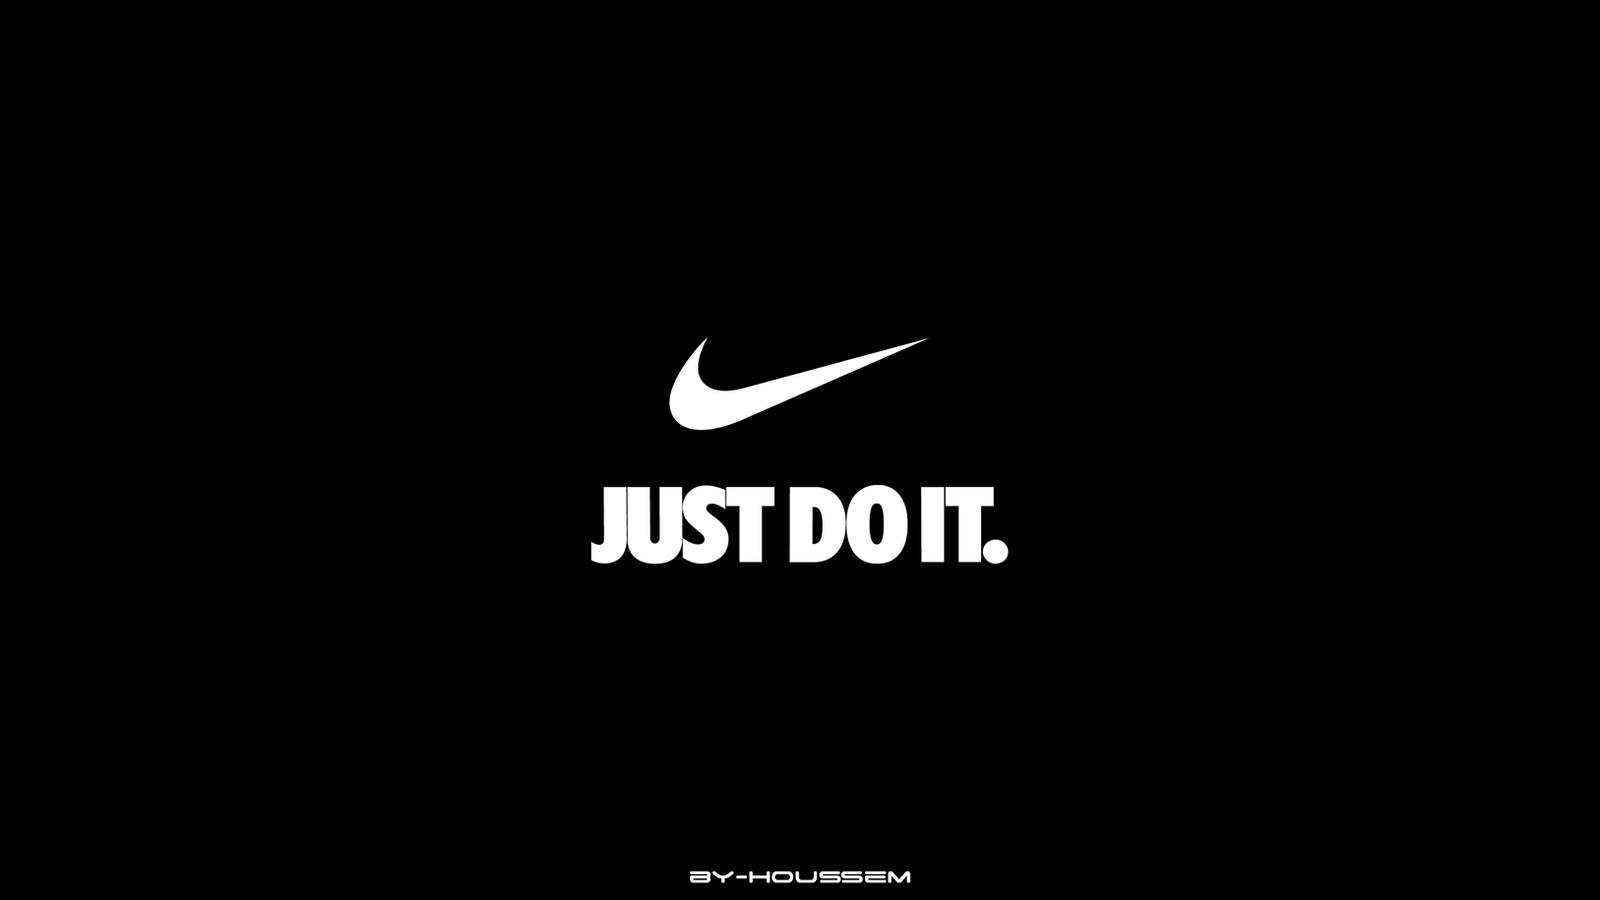 nike just do it wallpaper - photo #7